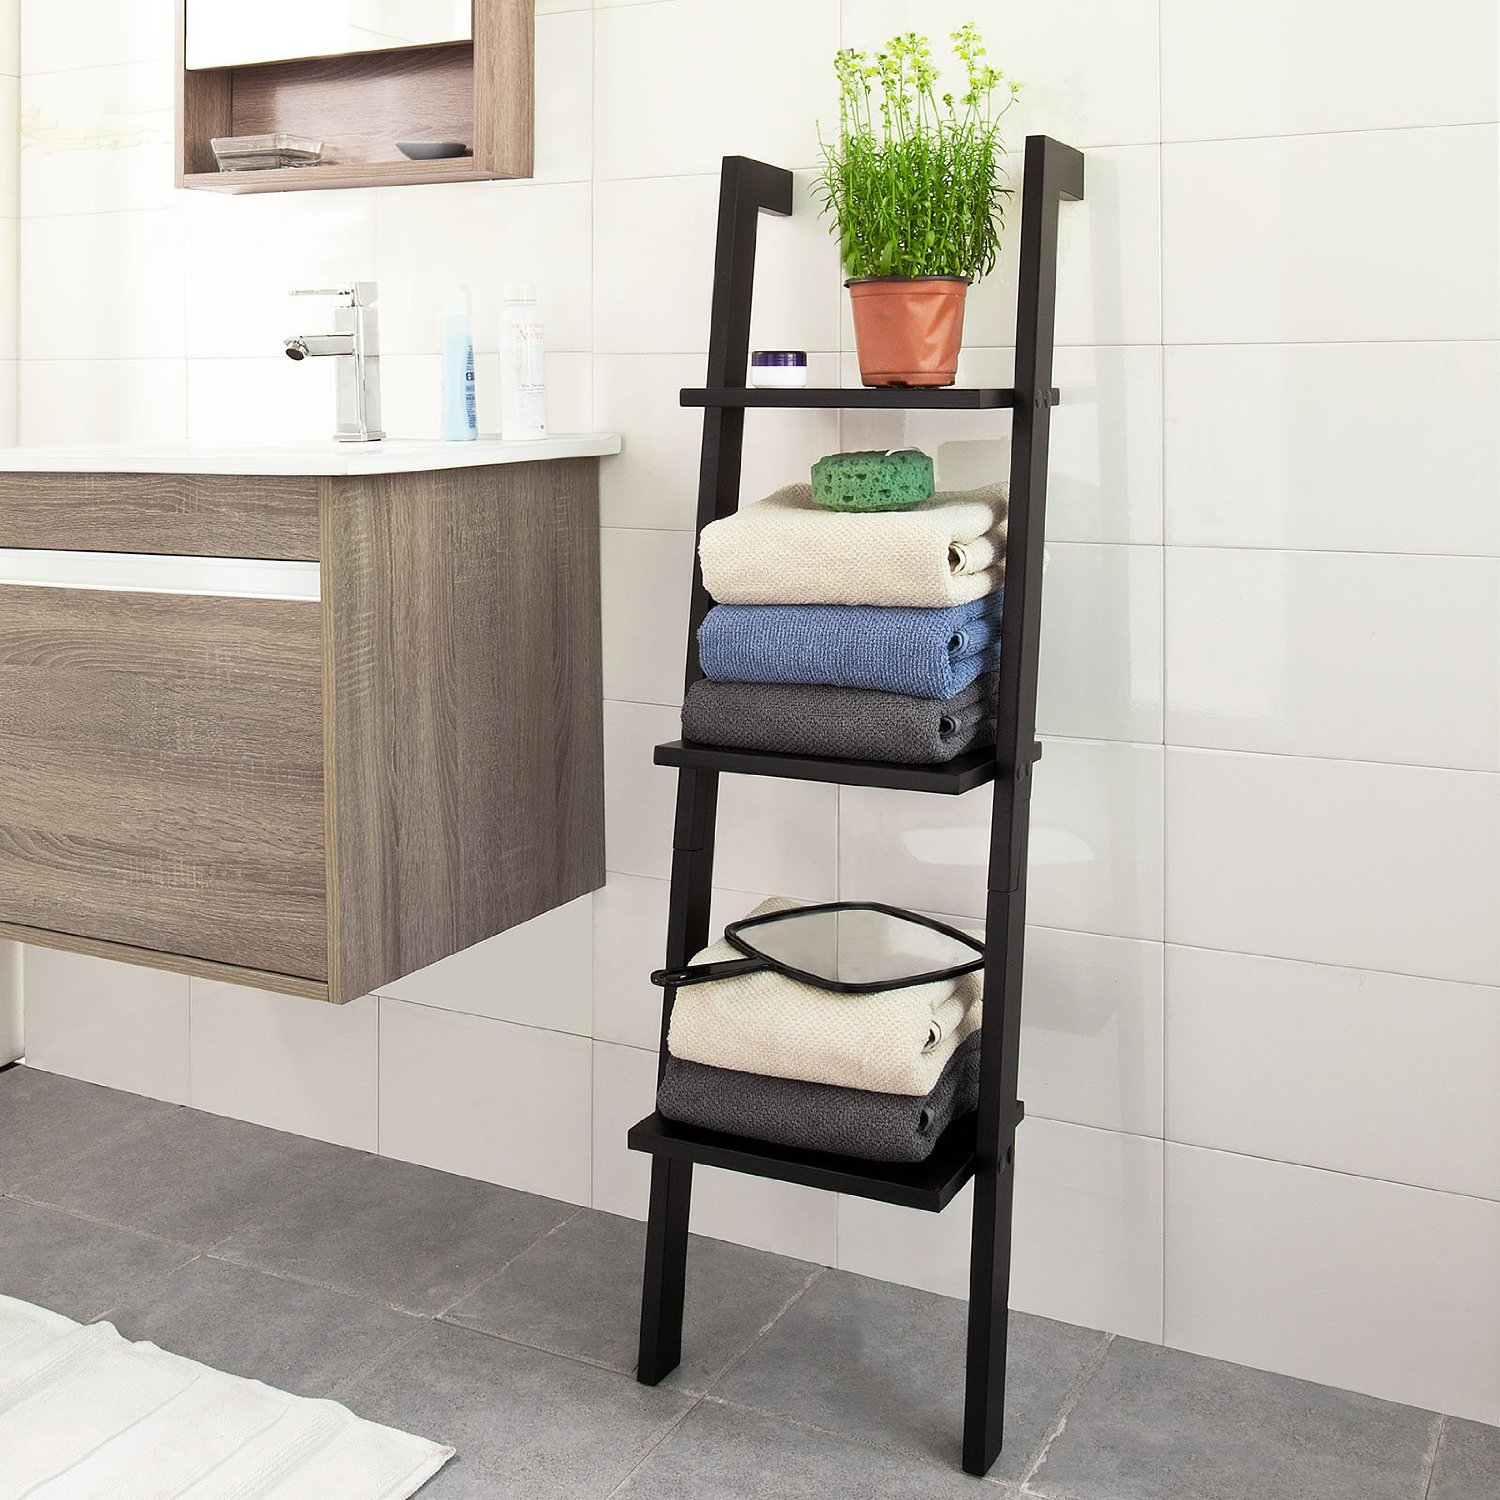 Superb 11 Best Bathroom Ladder Shelves For Toilet Storage Reviews Beutiful Home Inspiration Truamahrainfo